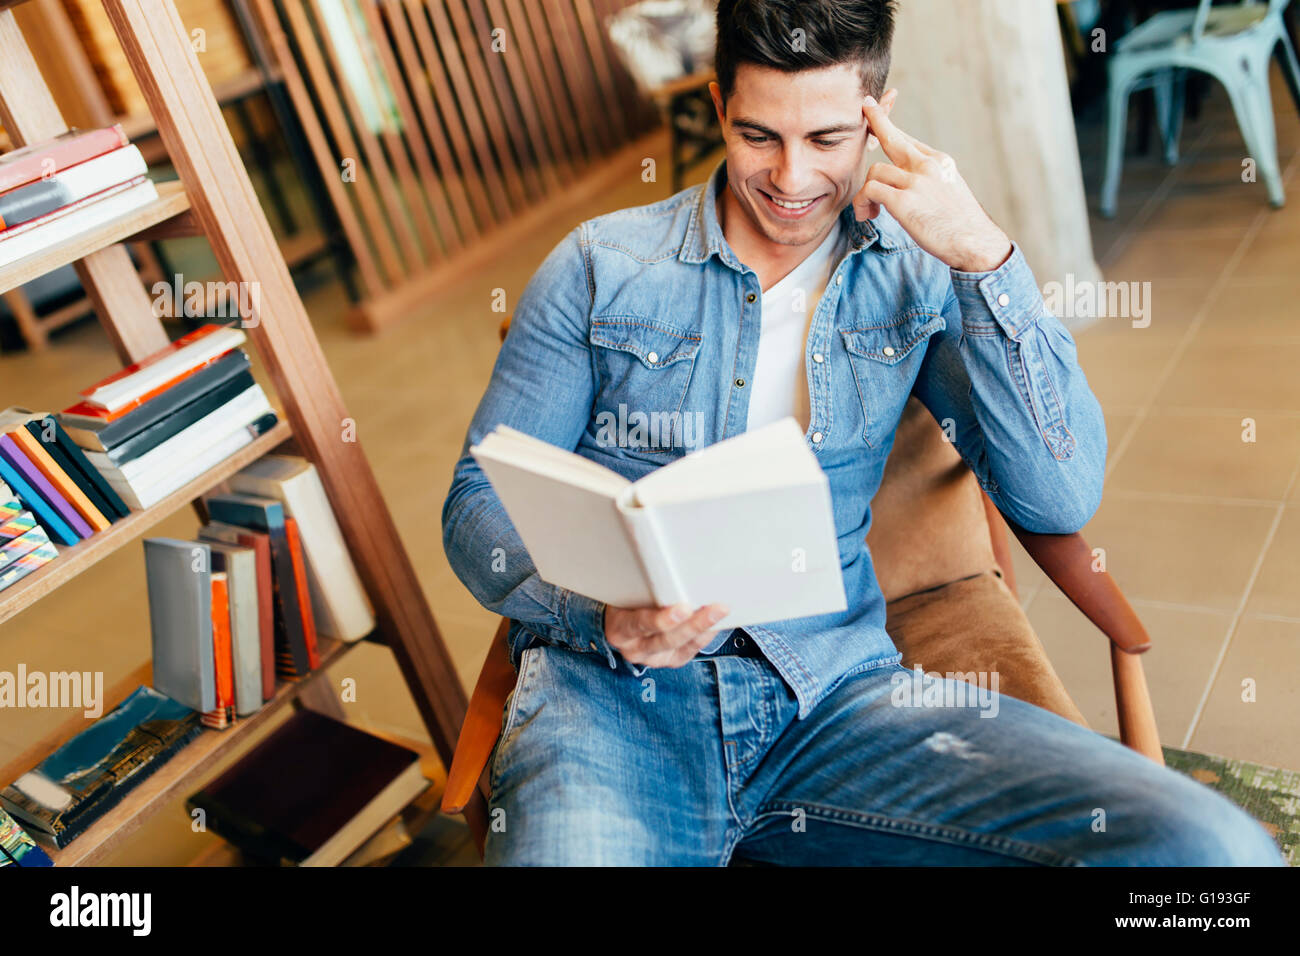 Handsome man studying by reading books and preparing for exam - Stock Image